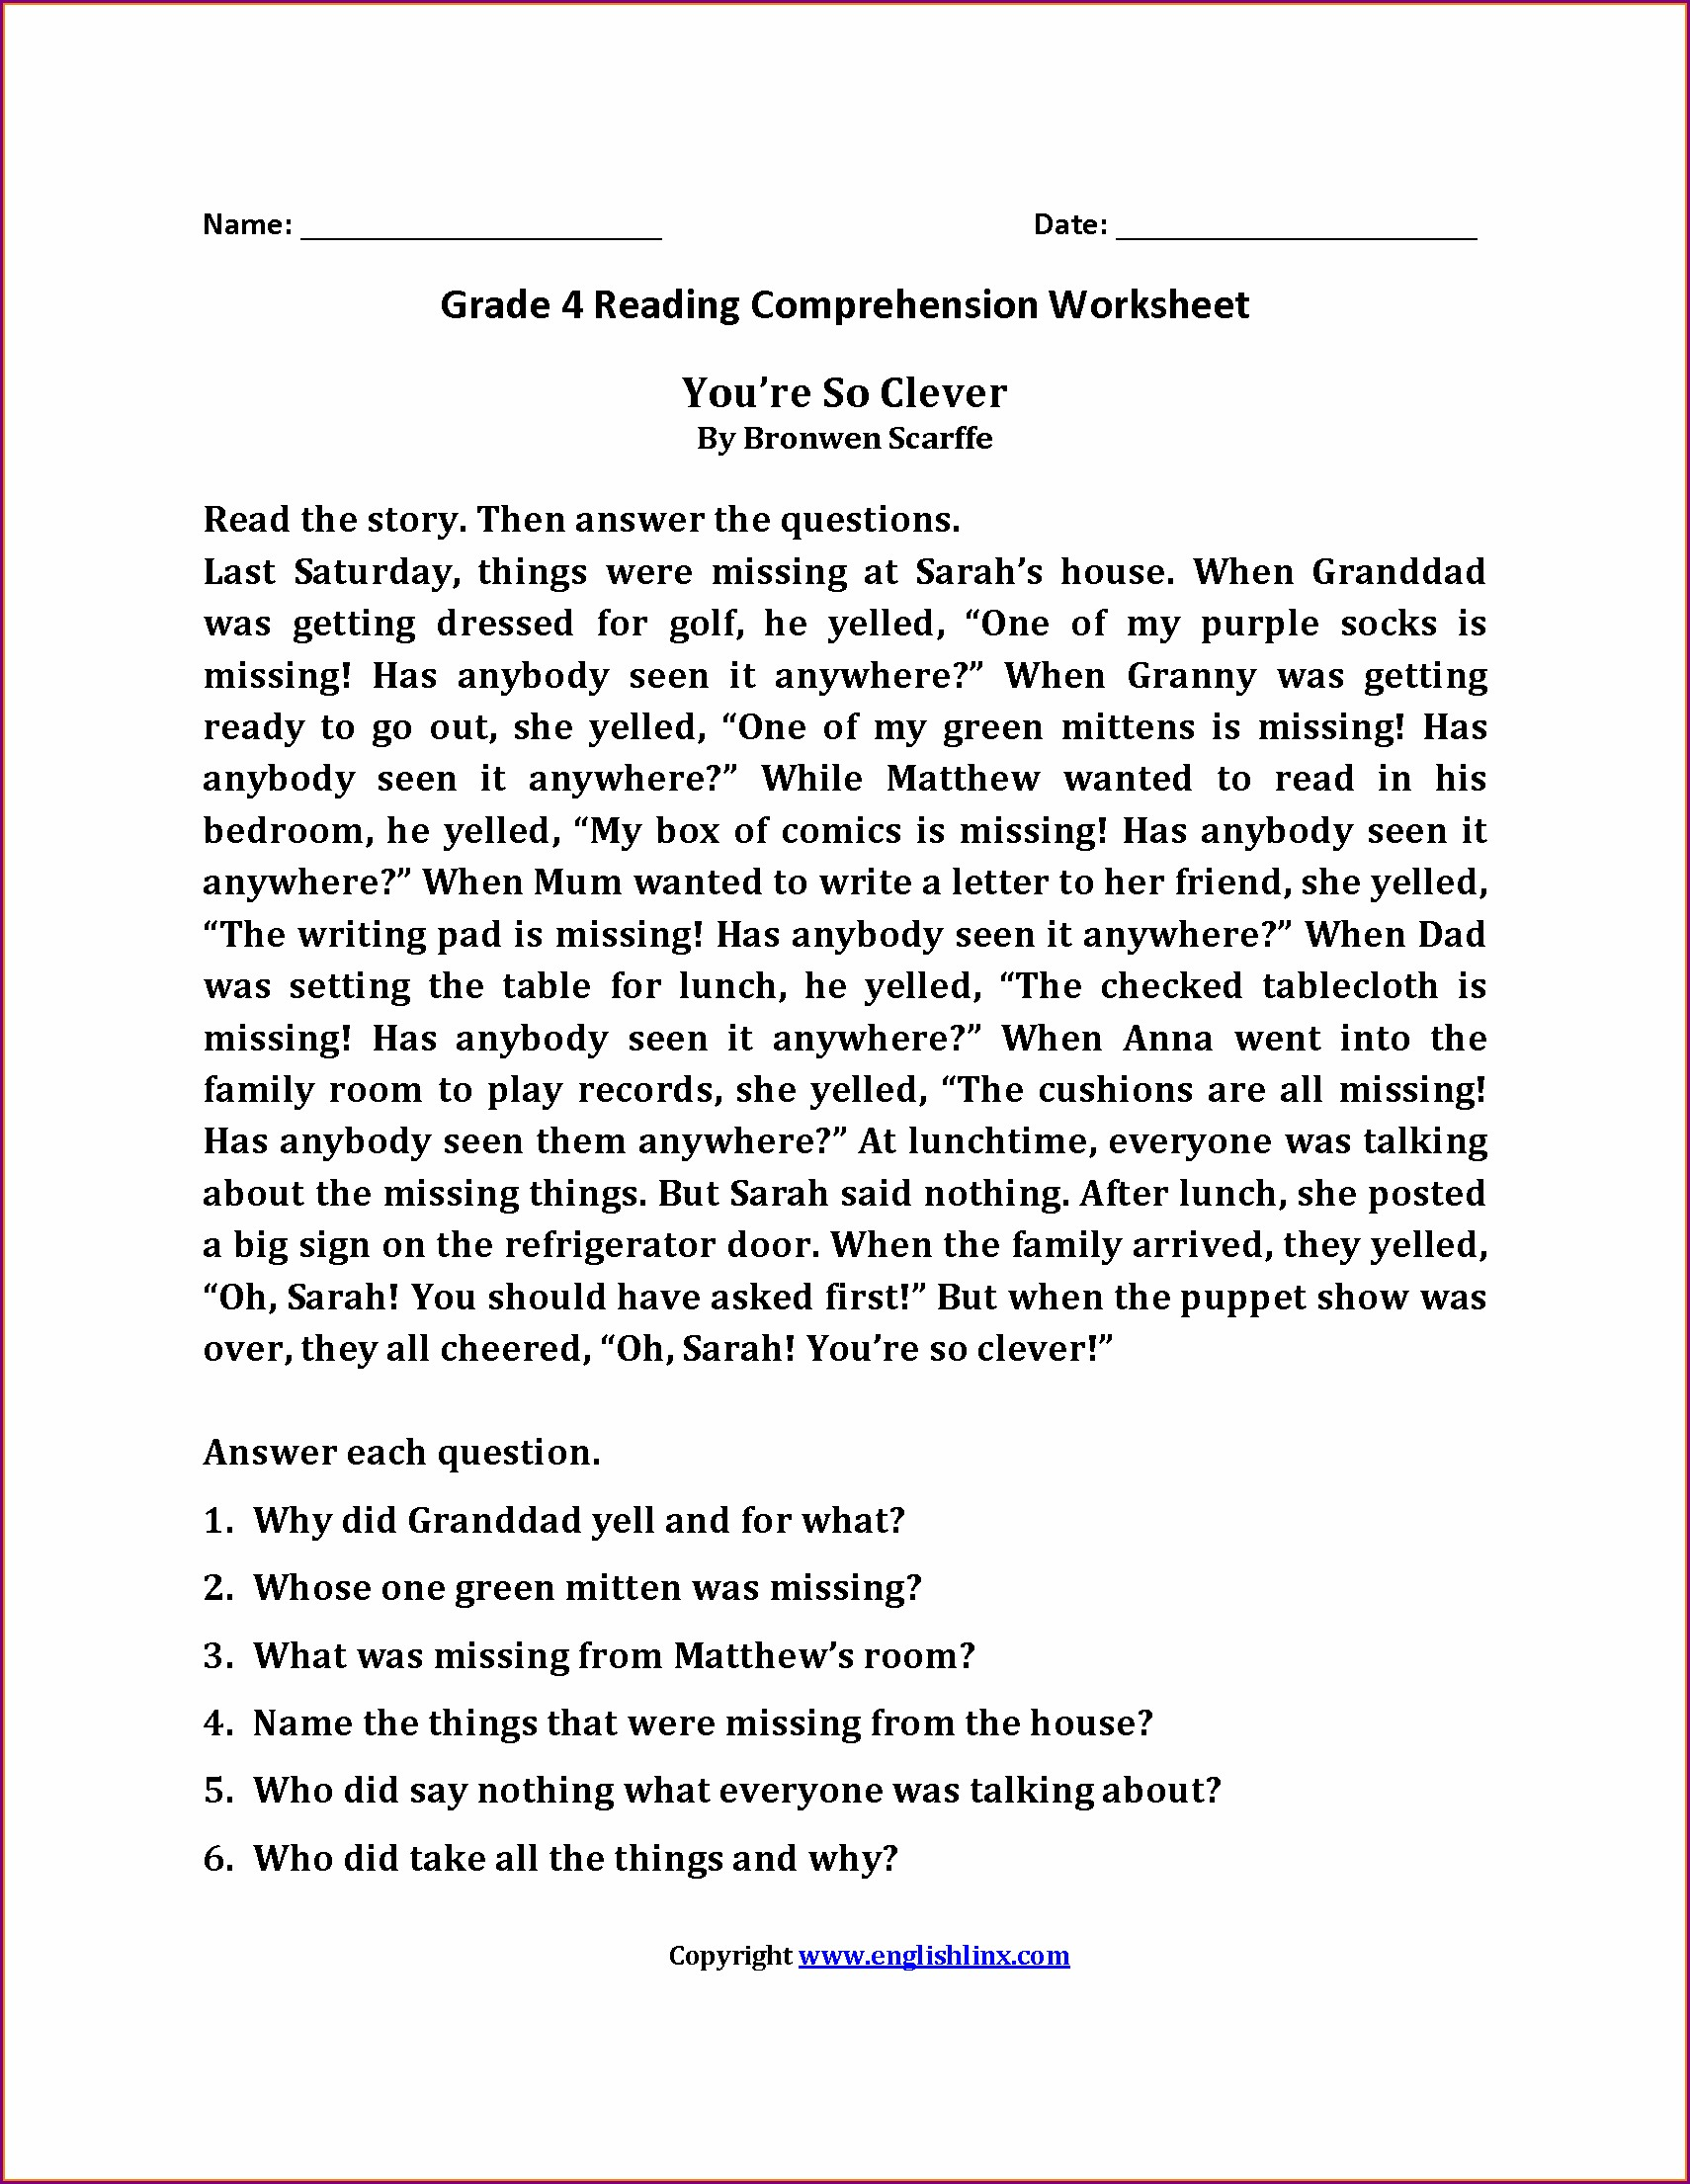 Comprehension Worksheets For Grade 3 With Answers